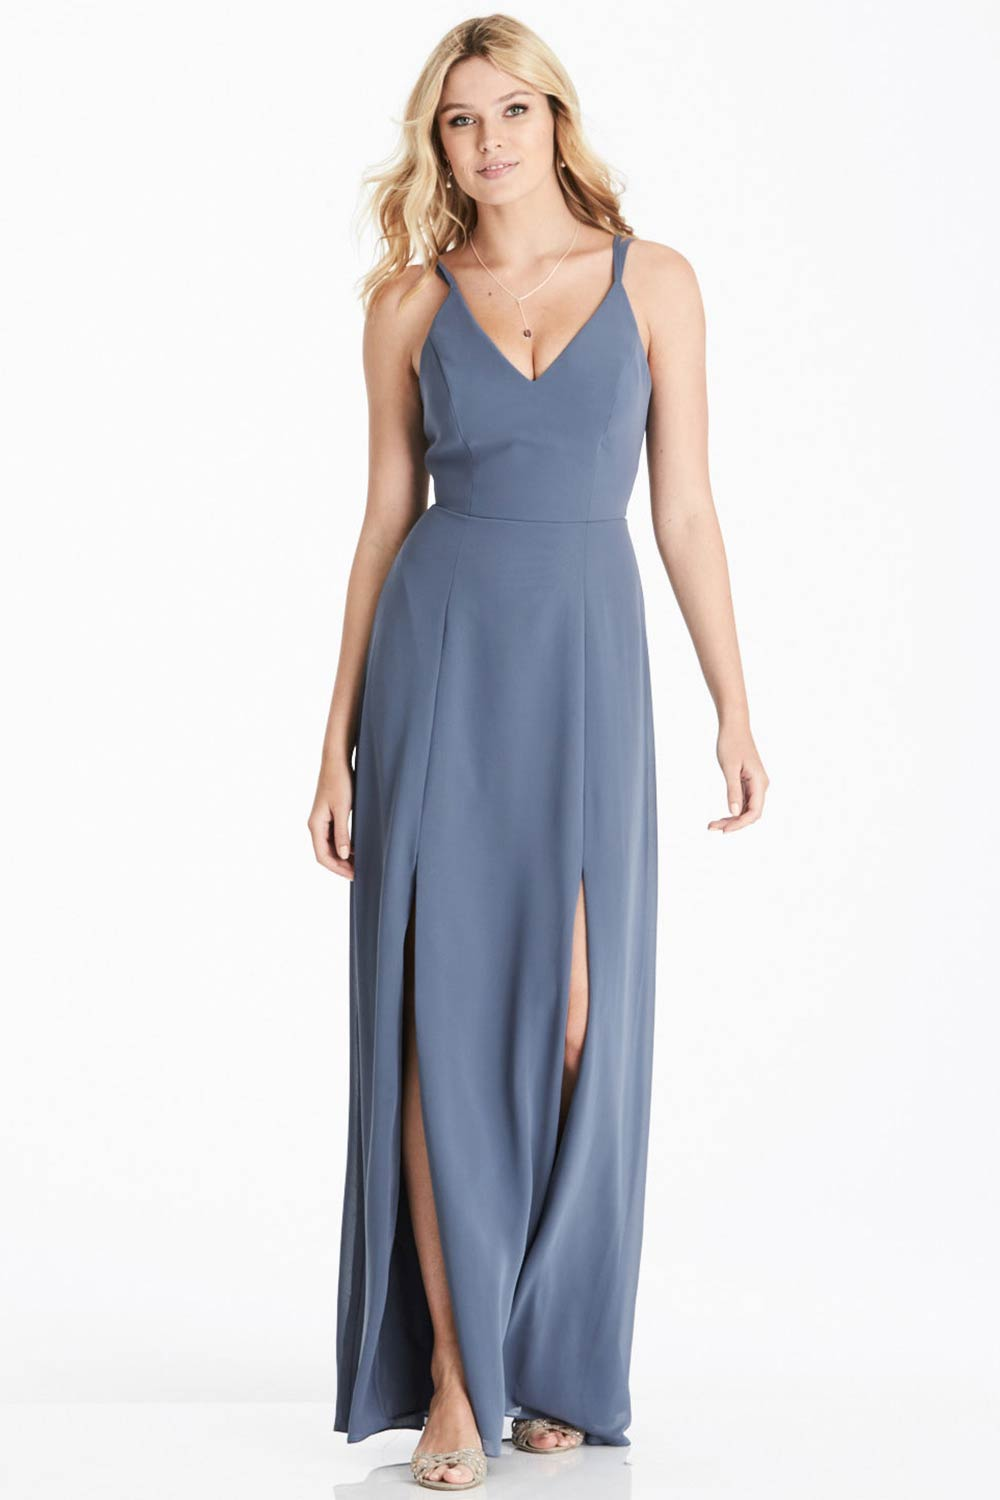 bridesmaid-dresses-dessy-26008